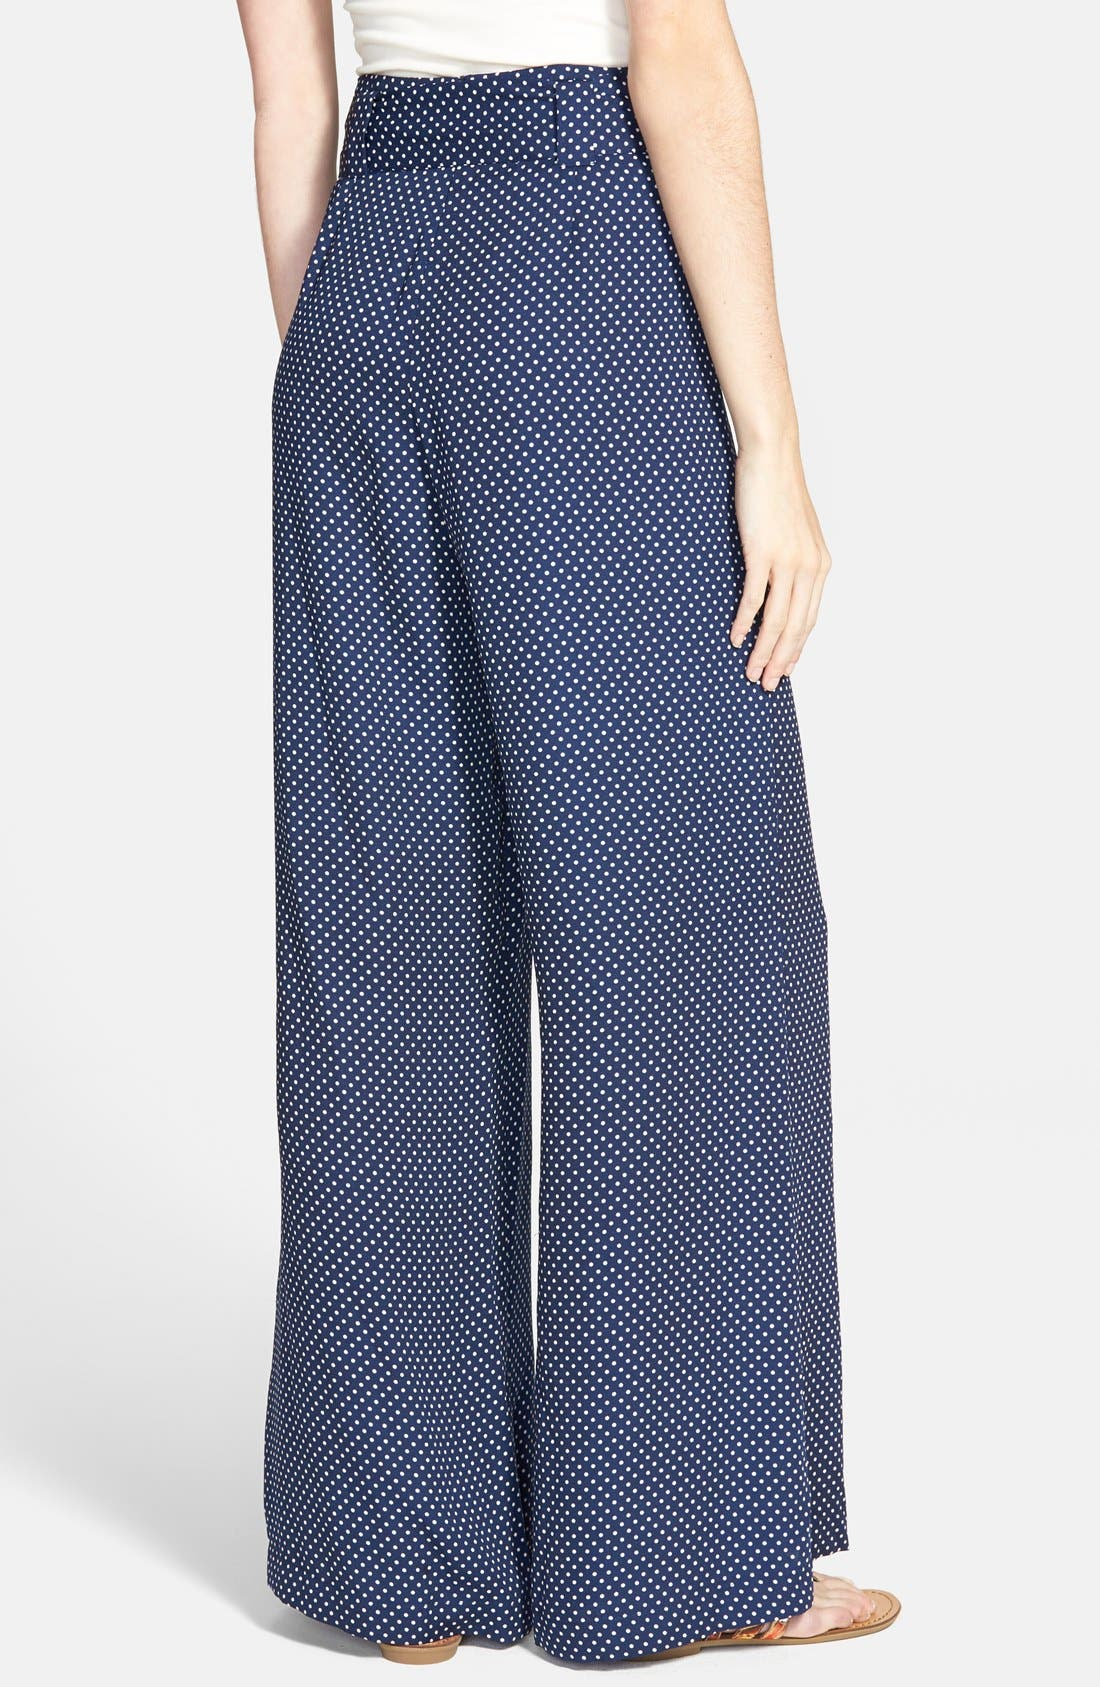 Alternate Image 2  - Socialite Print Tie Front Palazzo Pants (Juniors)